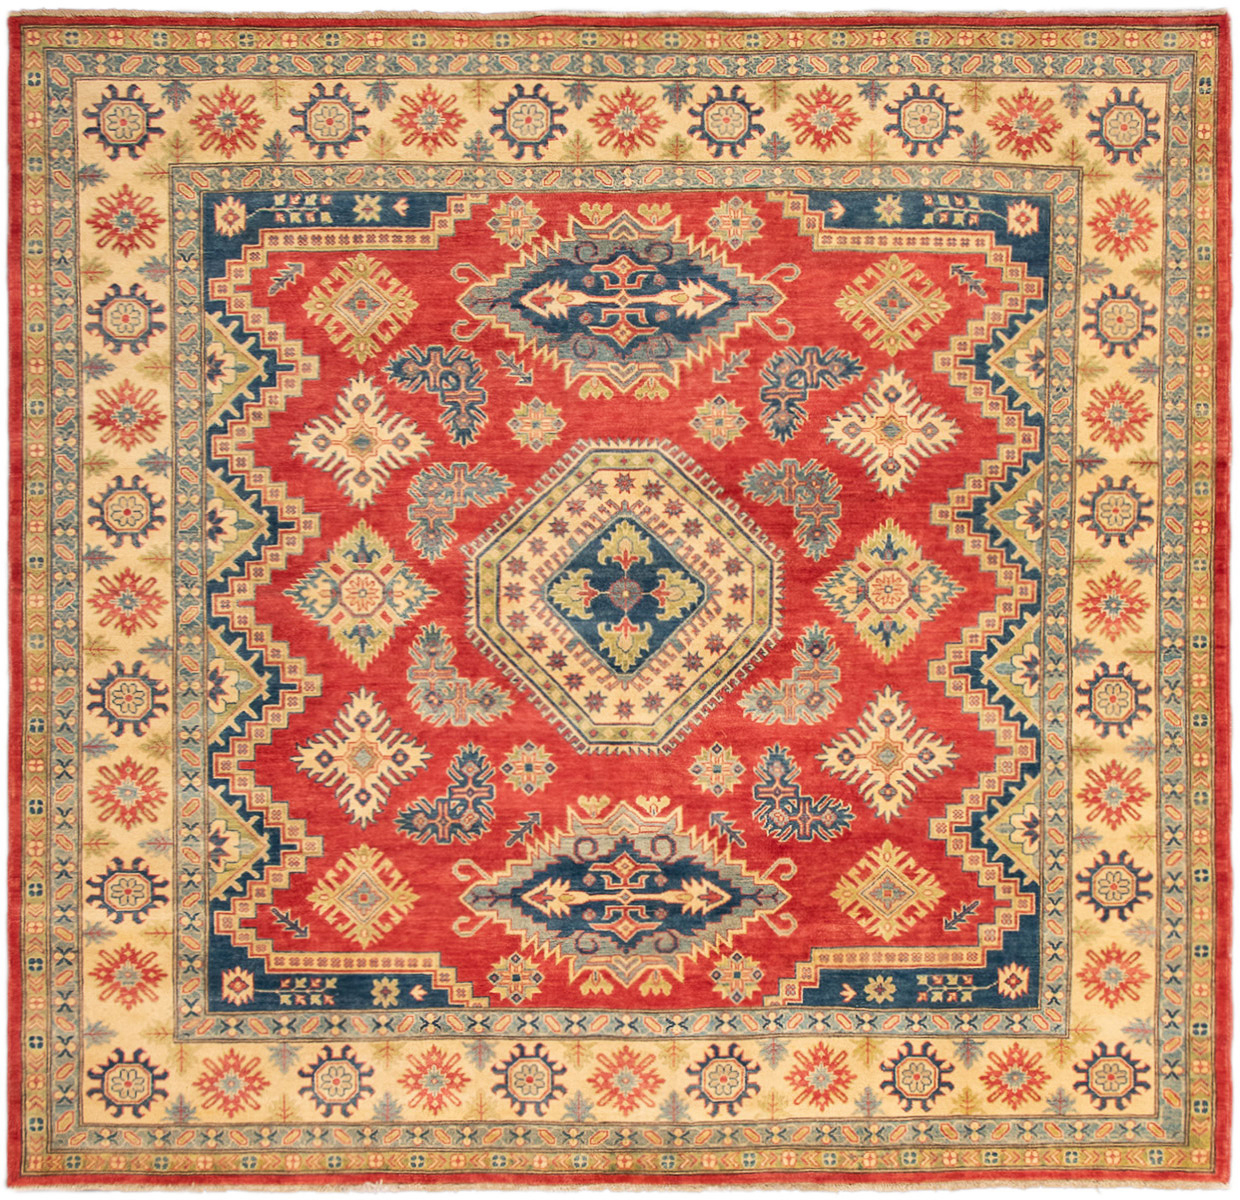 "Hand-knotted Finest Gazni Red Wool Rug 9'2"" x 8'10""  Product Image"